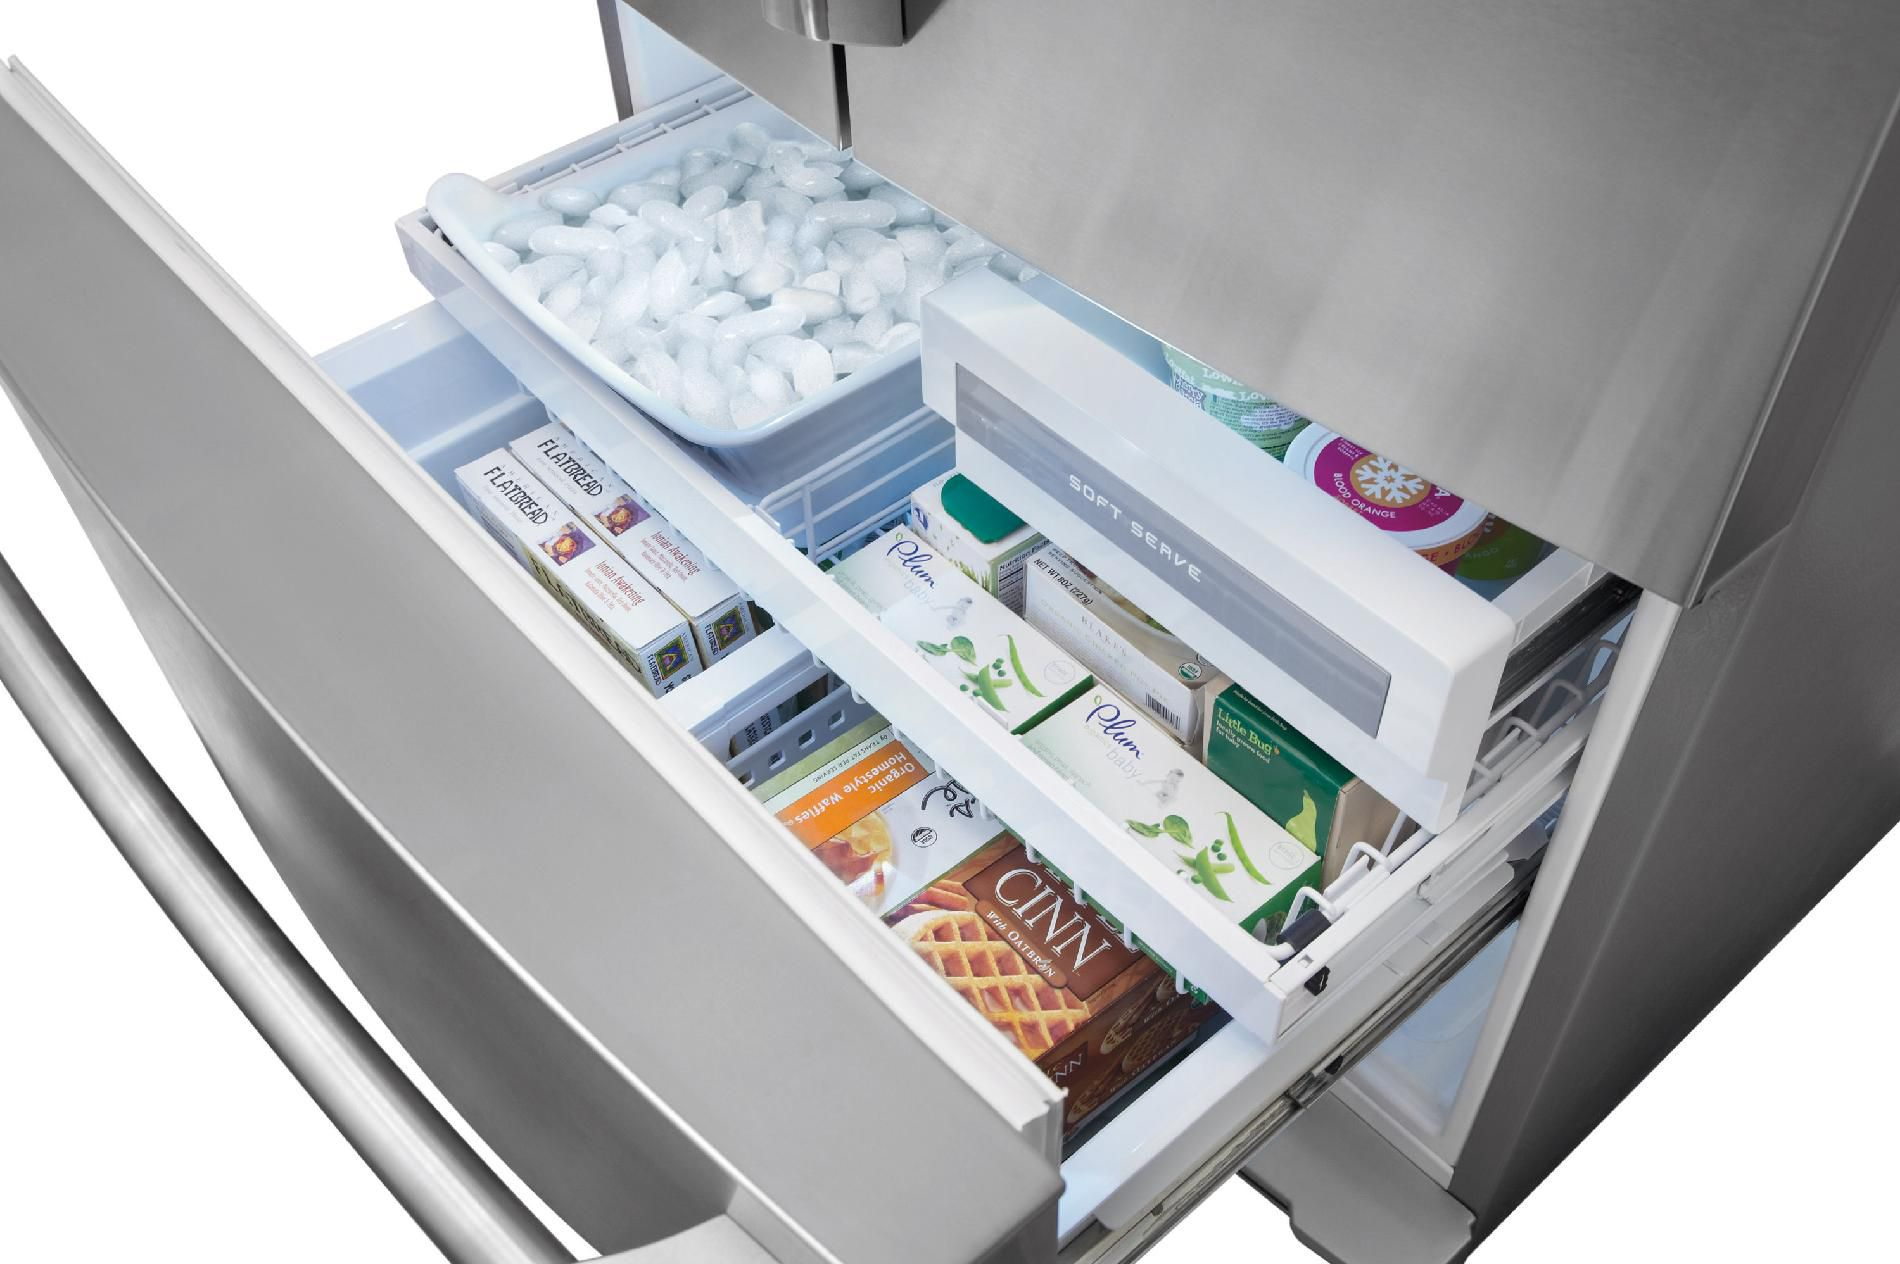 Electrolux 23 cu.ft. Counter-depth French Door Refrigerator with Wave-Touch™ Controls - Stainless Steel